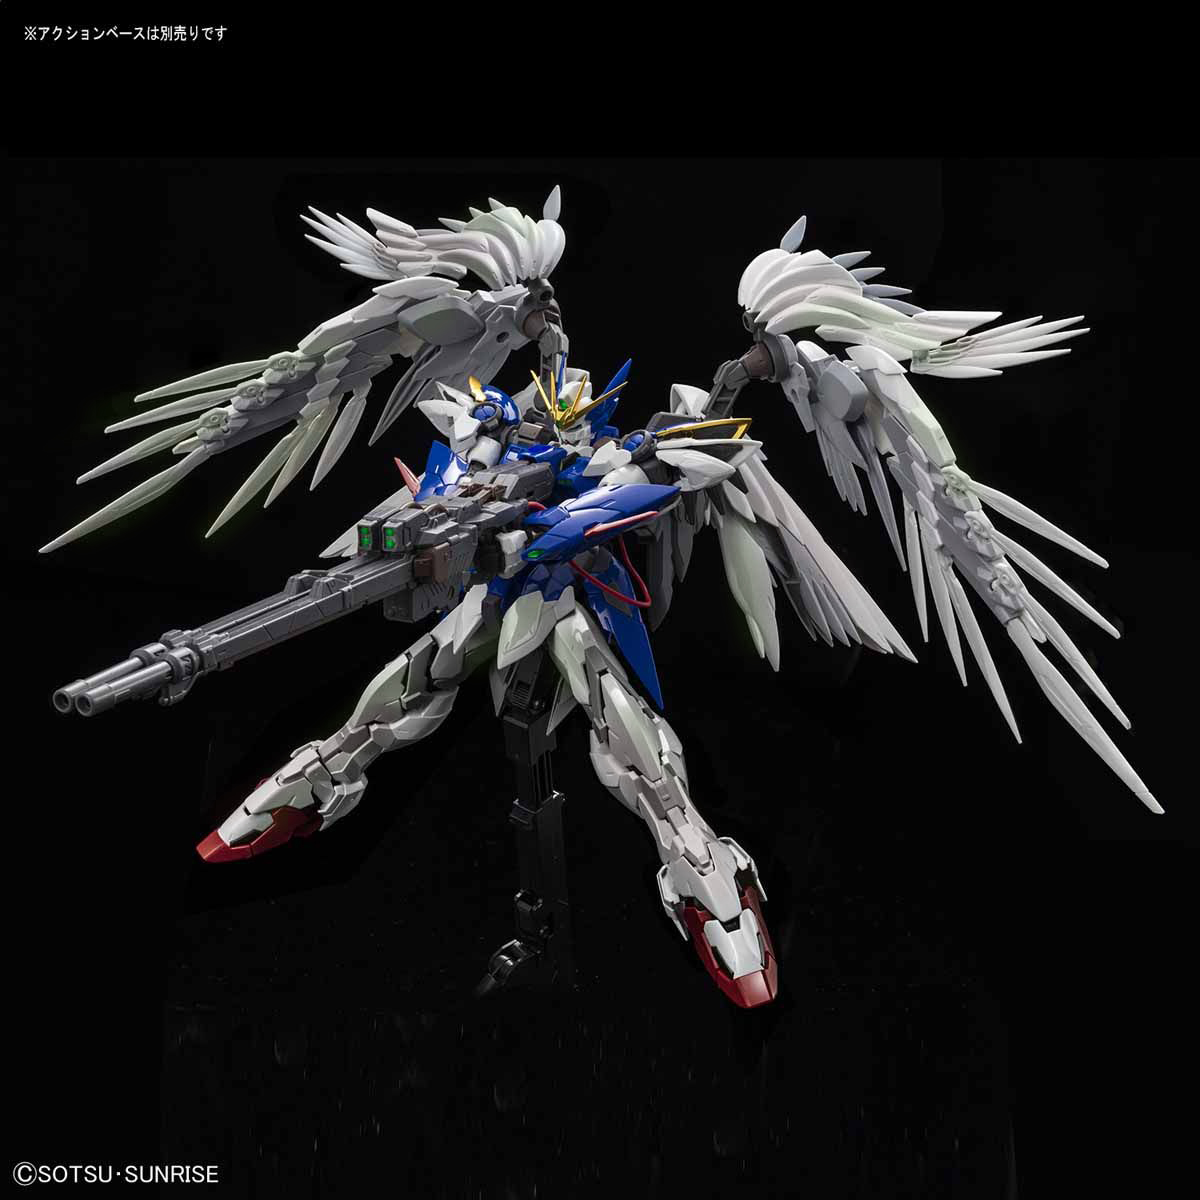 HI-RESOLUTION MODEL 1/100 WING GUNDAM ZERO EW [SPECIAL COATING]